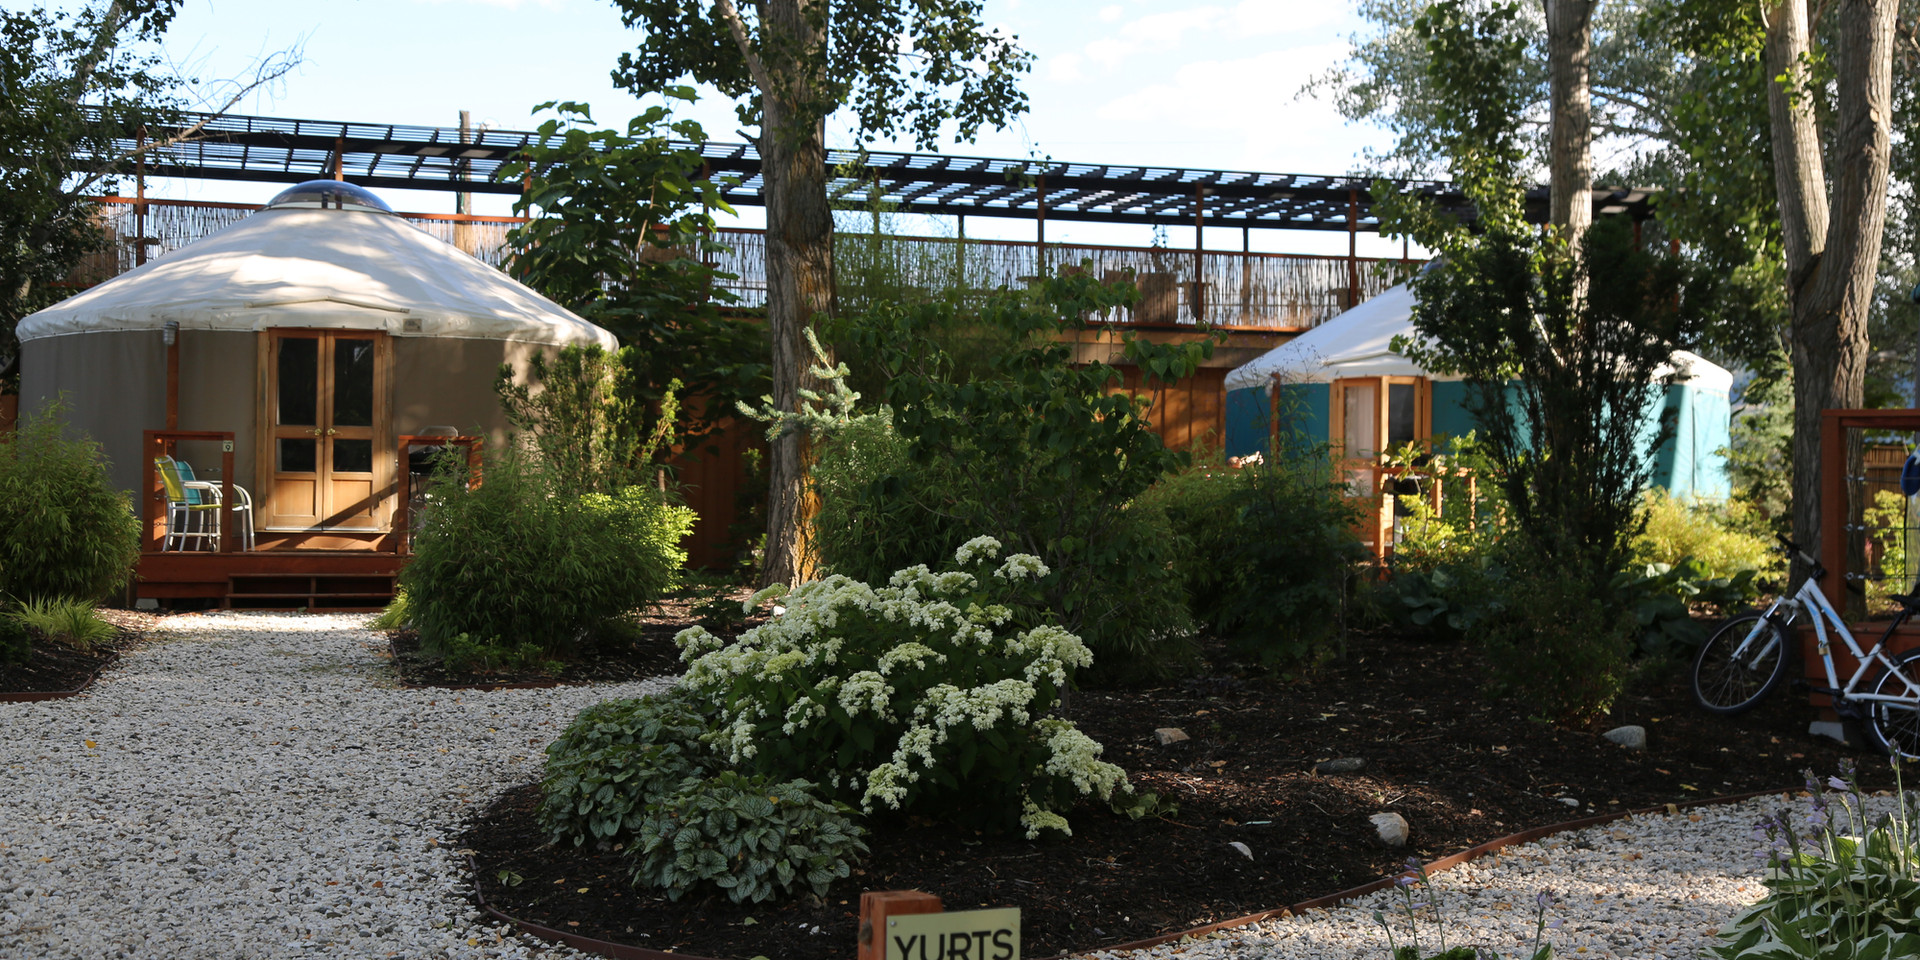 Yurt gardens and paths